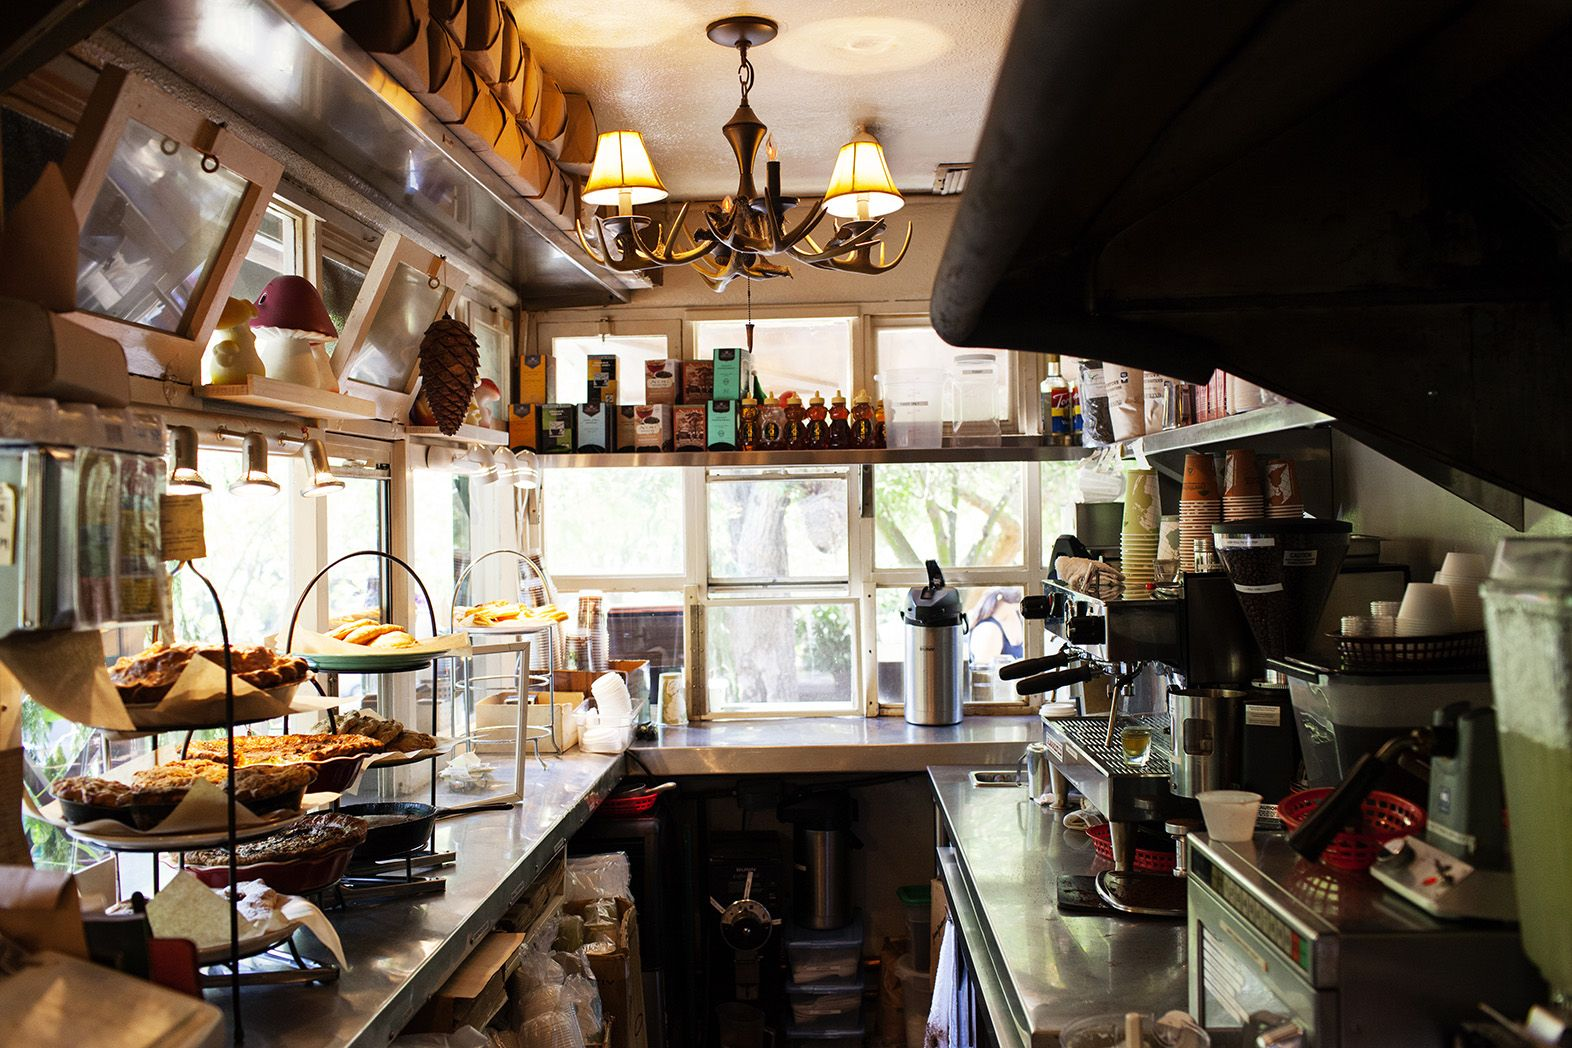 Trails Cafe in Griffith Park, LA. If they can cook in this tiny space anyone can cook pretty much anywhere.